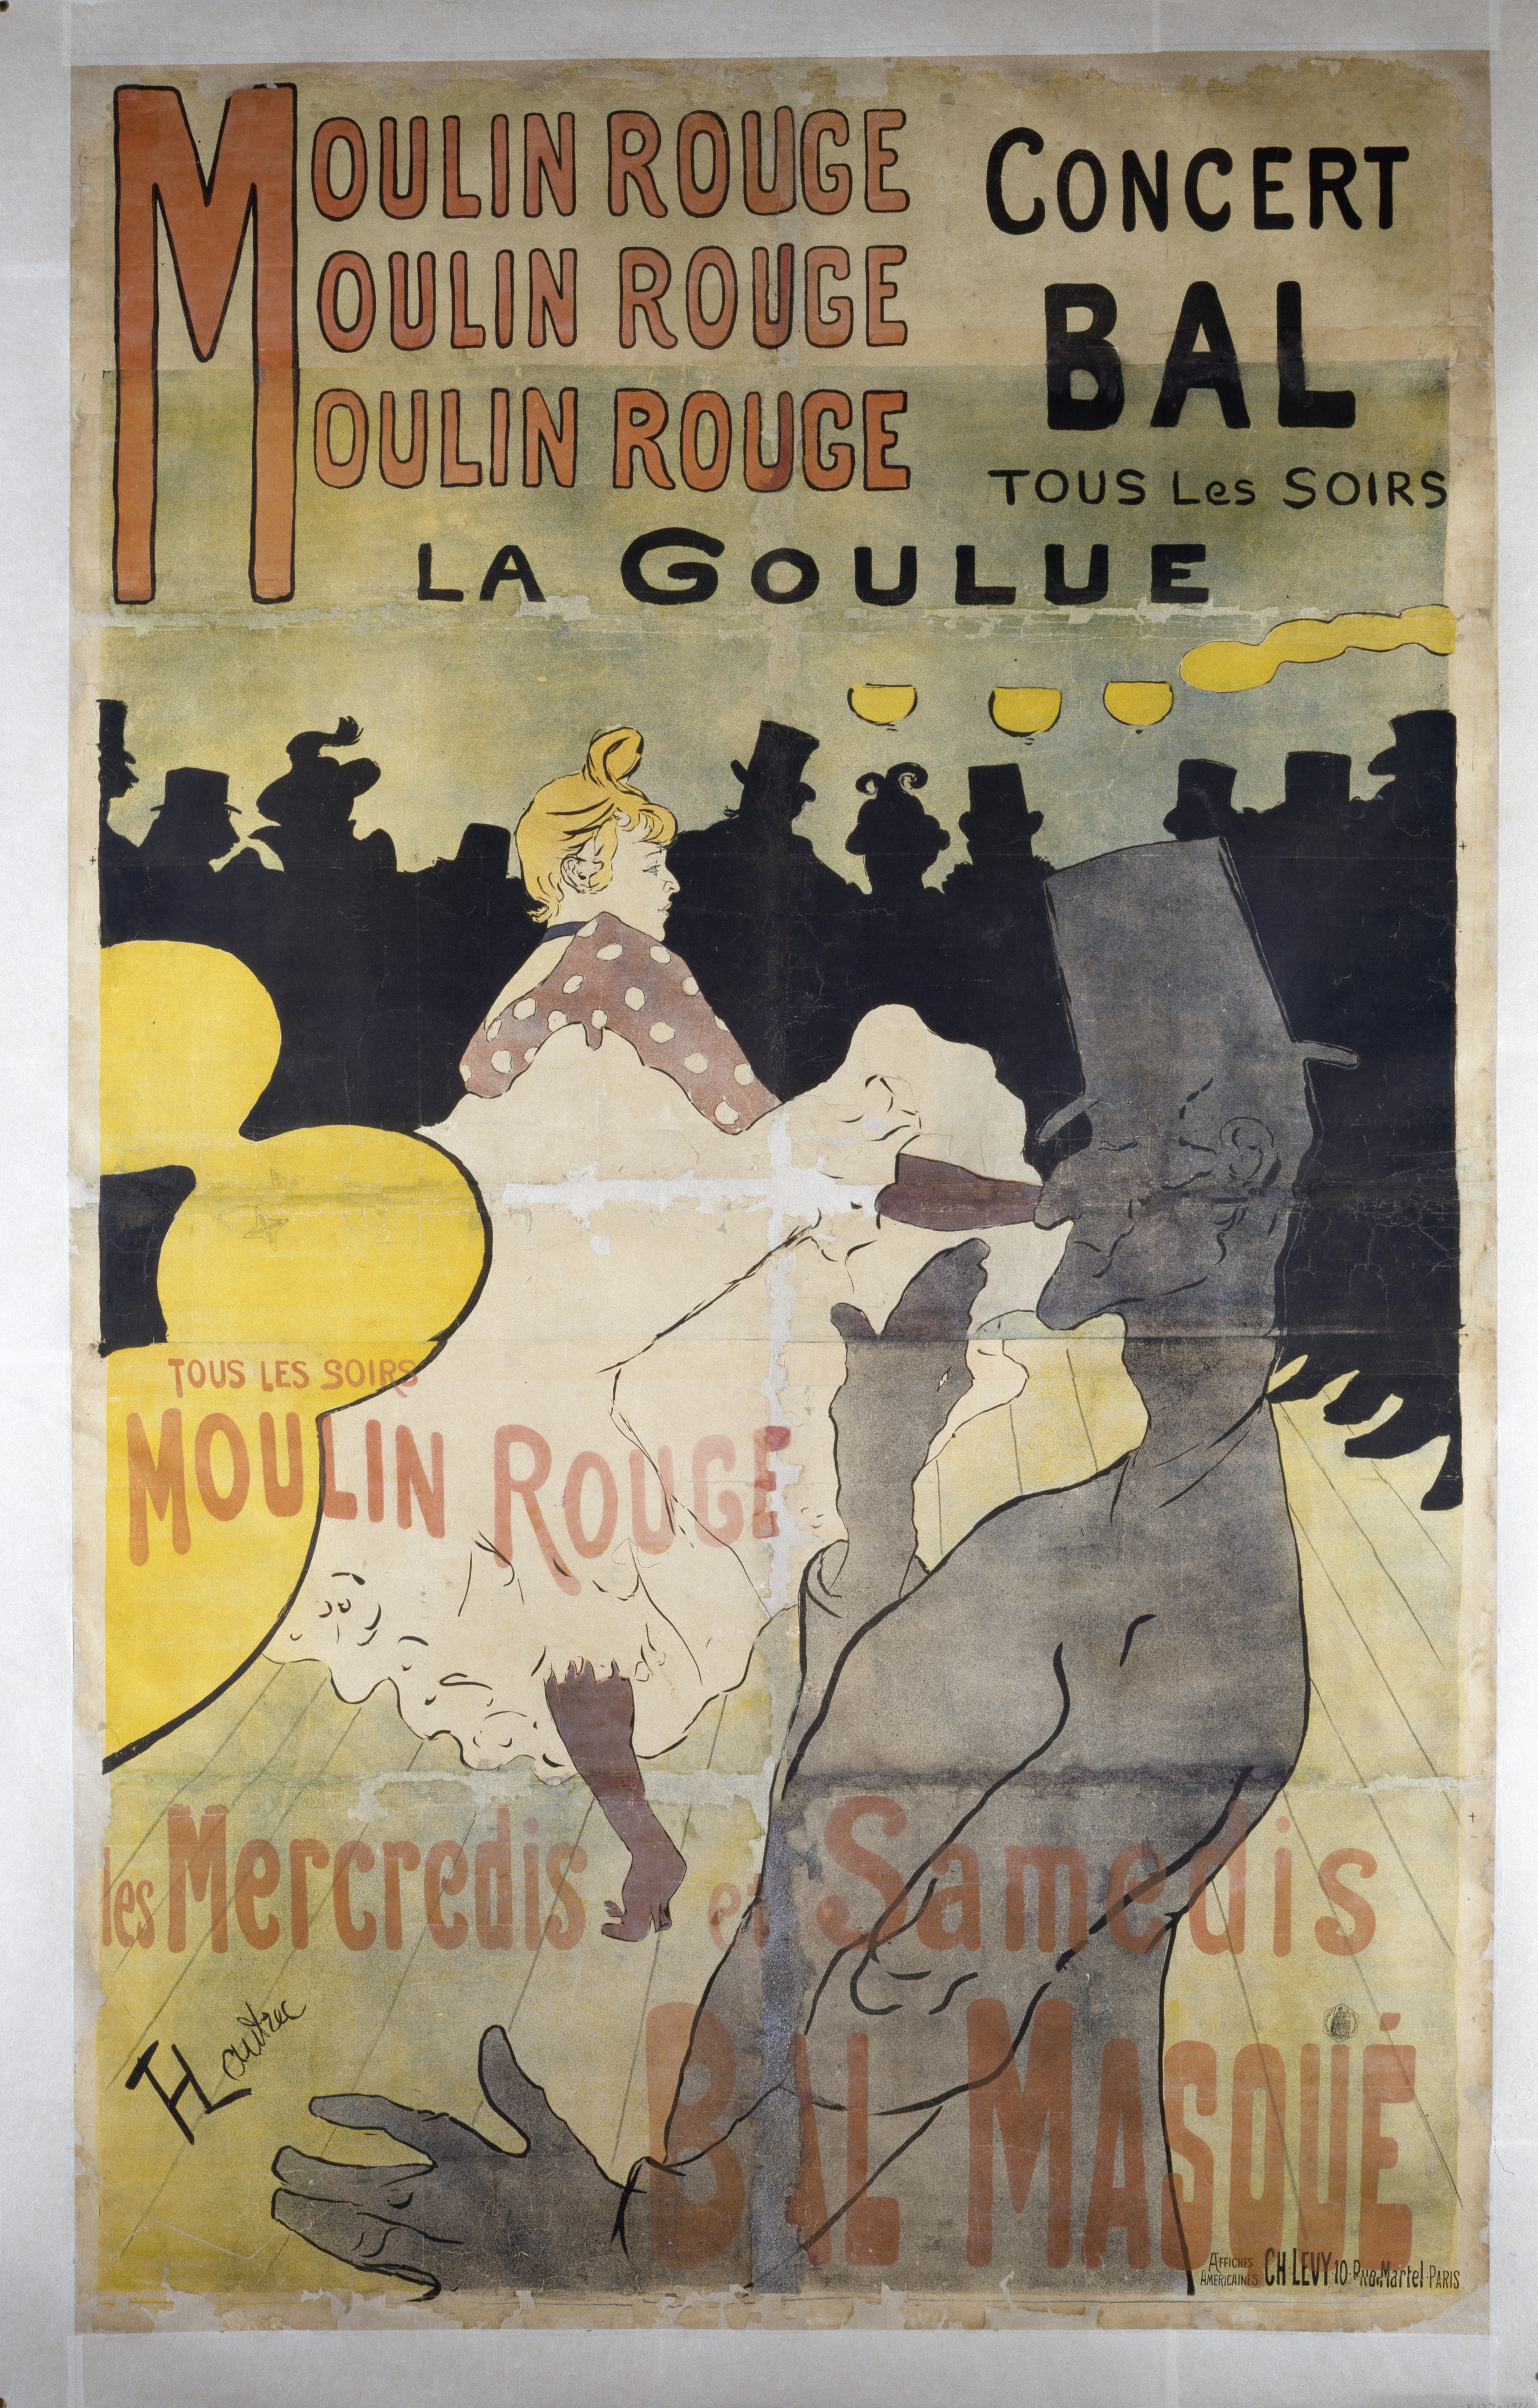 Moulin Rouge, La Goulue (Poster), 1891. Collection: Victoria and Albert Museum, London, presented by Mrs. J. T. Clarke. © Victoria and Albert Museum, London.